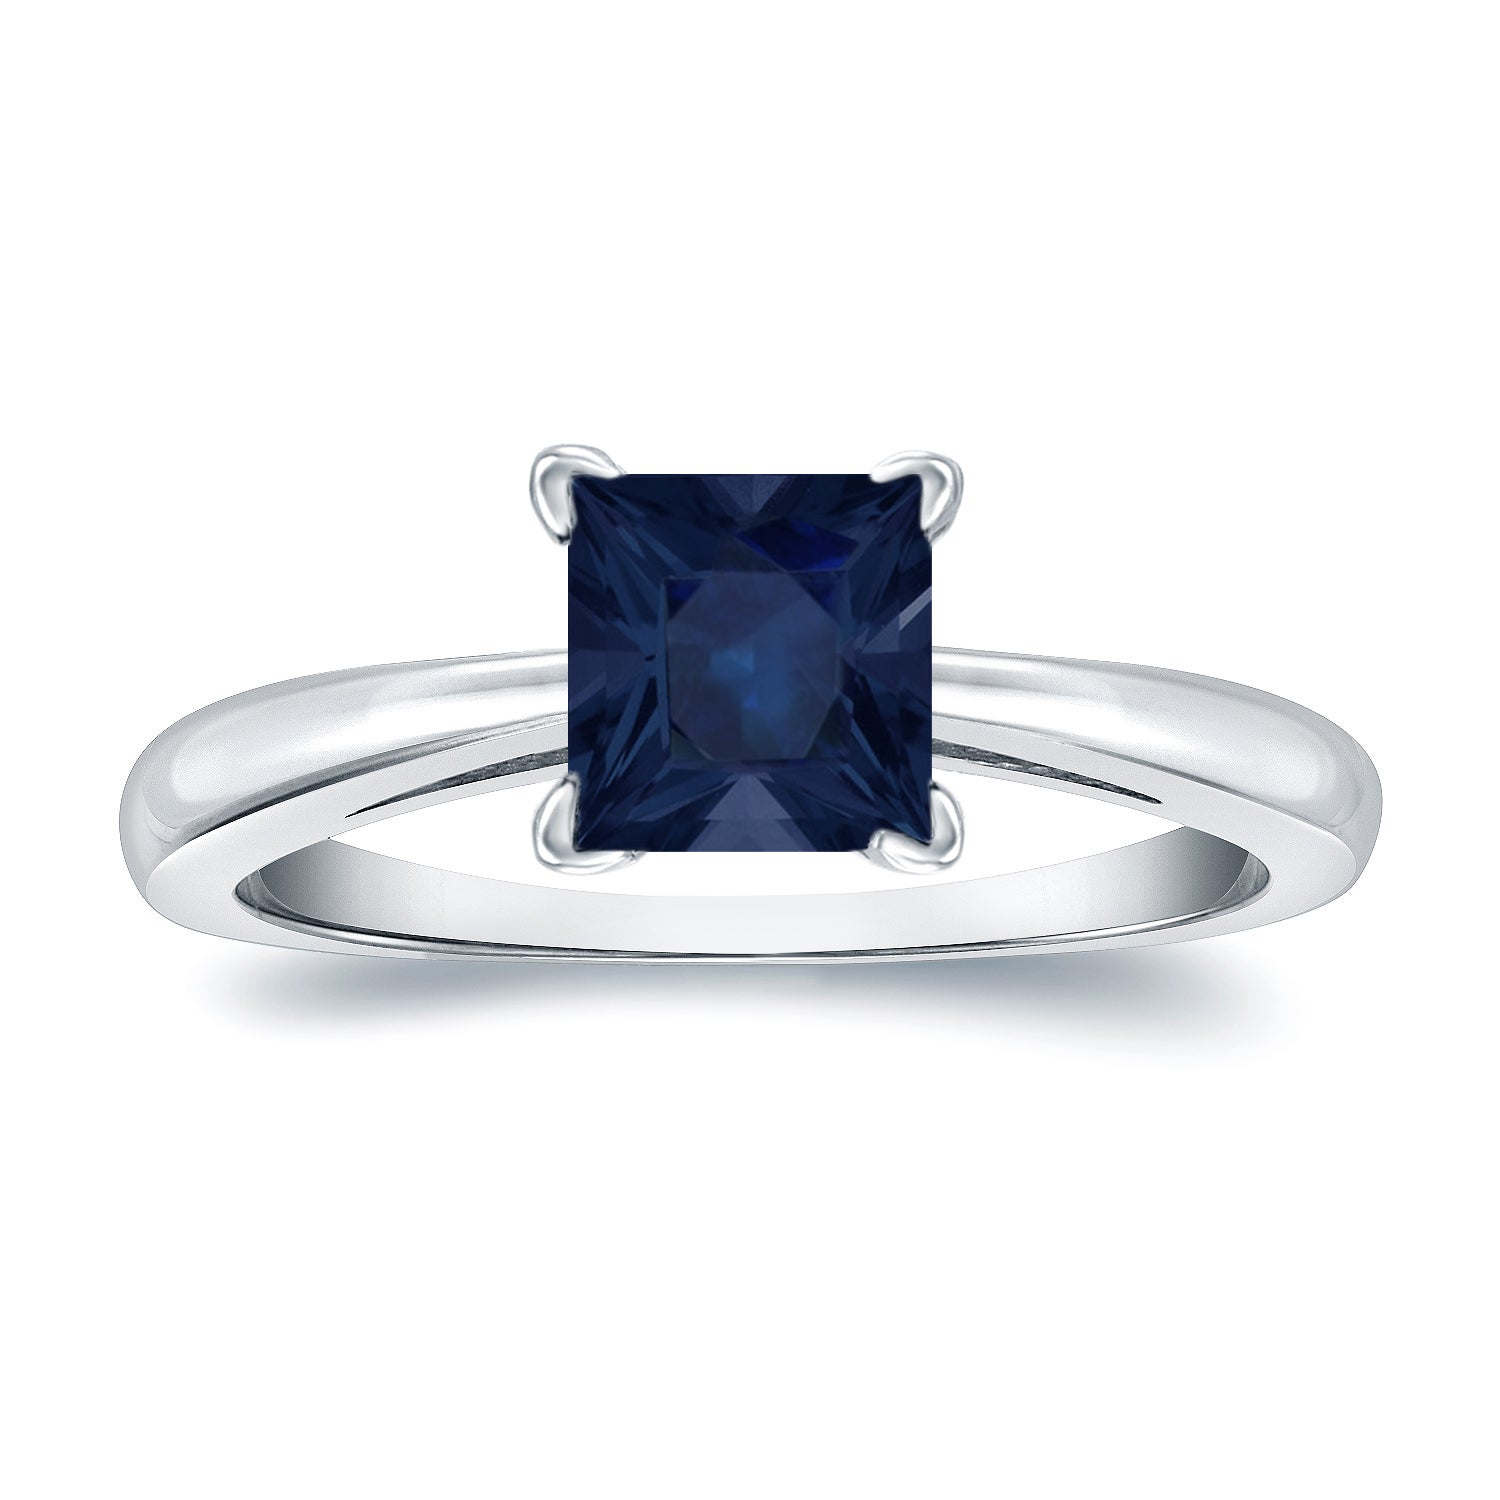 gold t solitaire square miabella sapphire ring carat com cut white ip created engagement w walmart